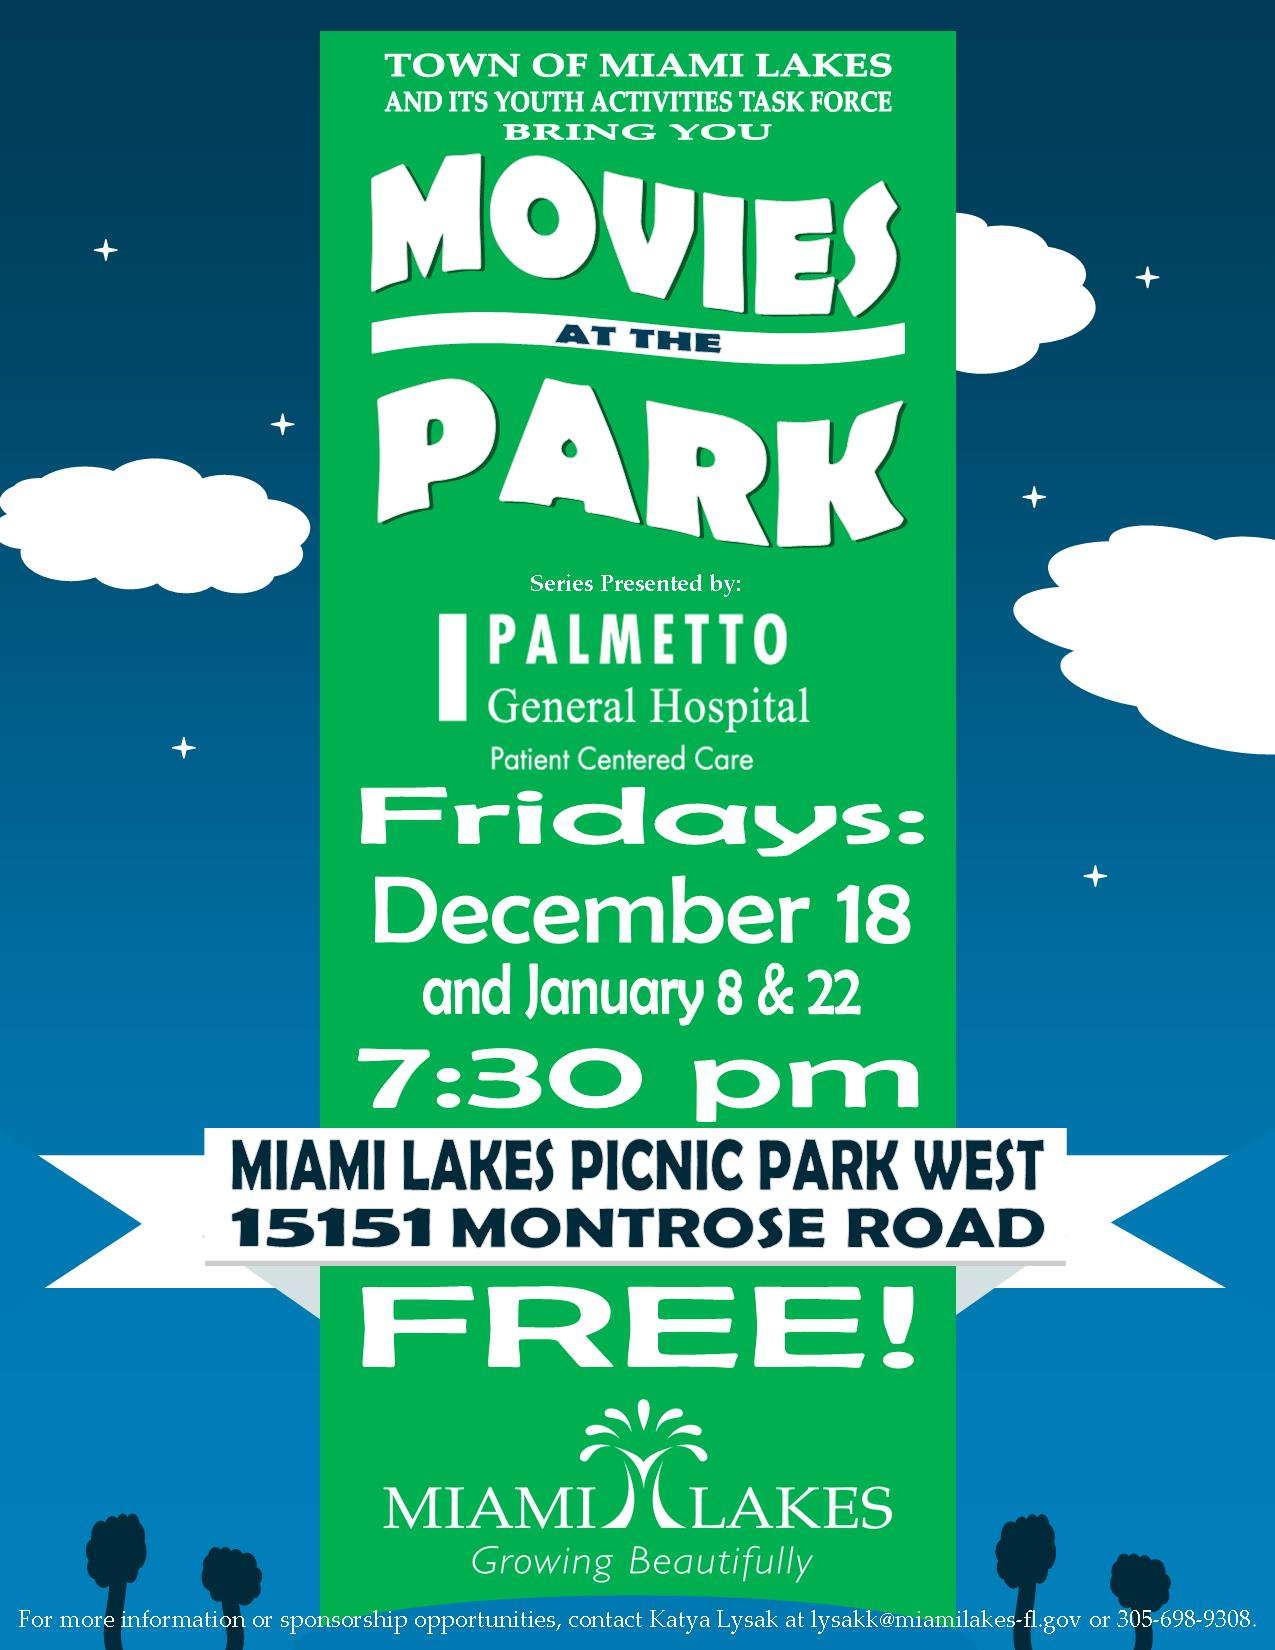 2015 MOVIES IN THE PARK FLYER 4